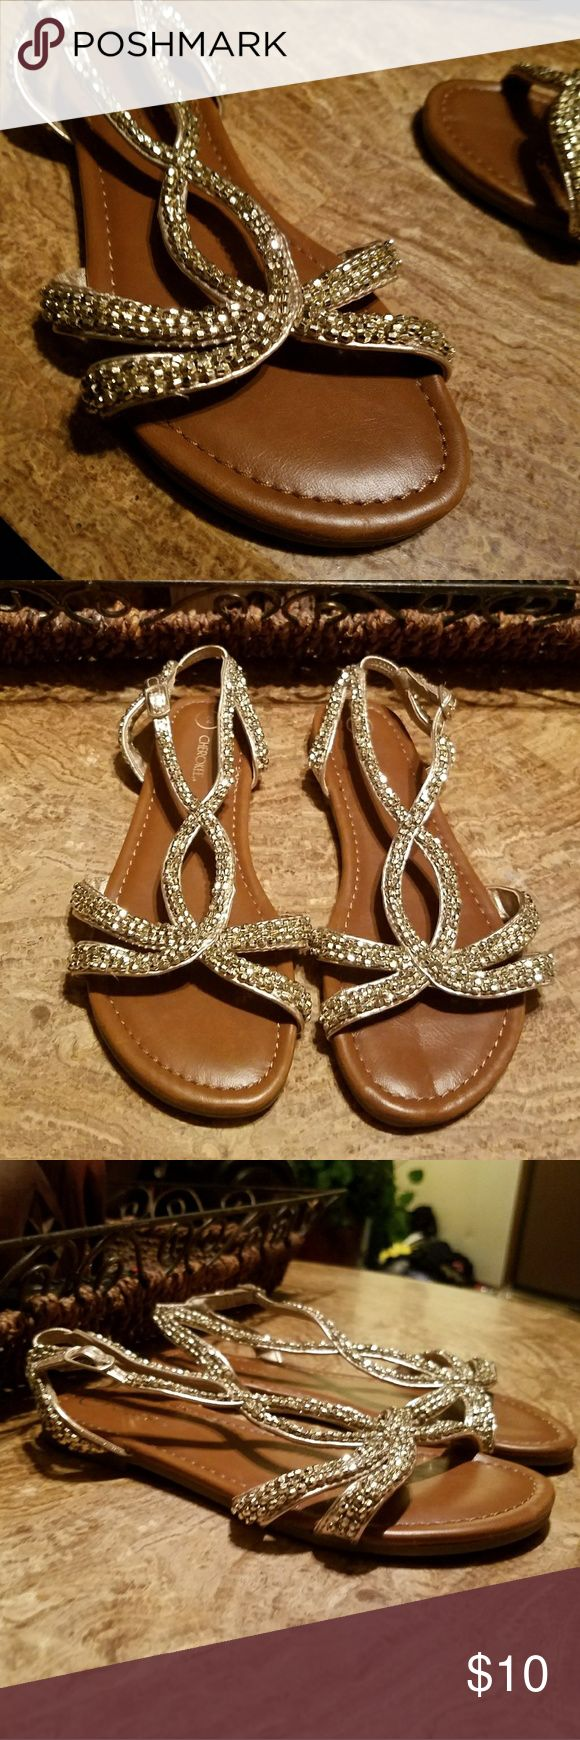 Girls Gold Rhinestone Sandals Preowned in good condition Cherokee brand Size 2 Cherokee Shoes Sandals & Flip Flops